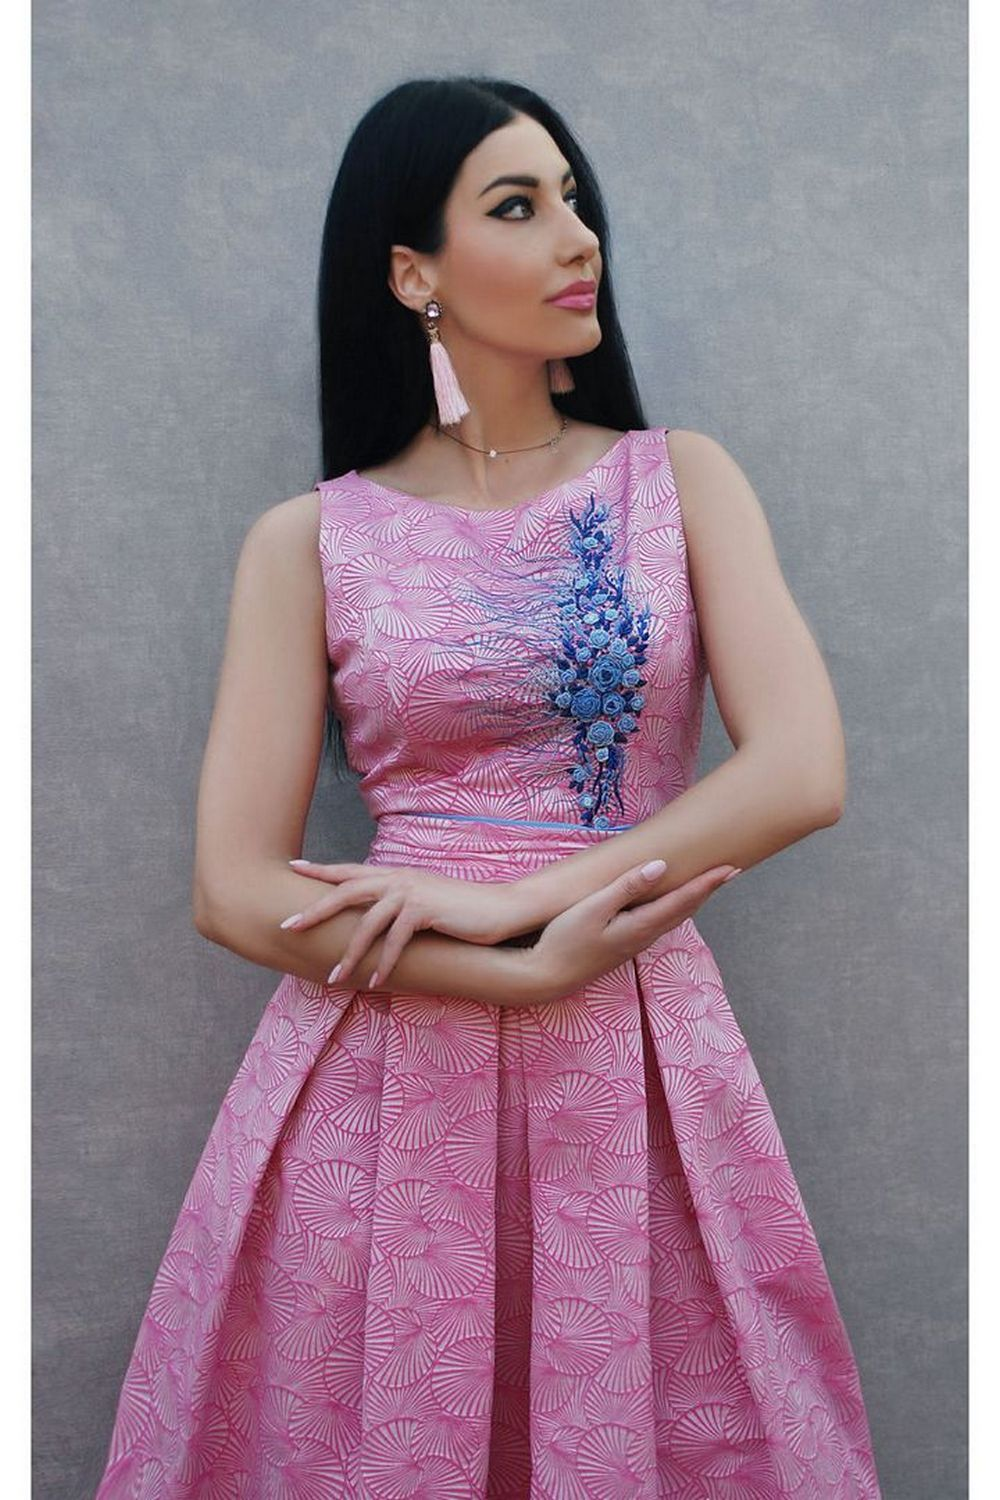 Buy Elegant pink jacquard midi dress with hand made embroidery, Original unique summer dress, Party comfortable dress